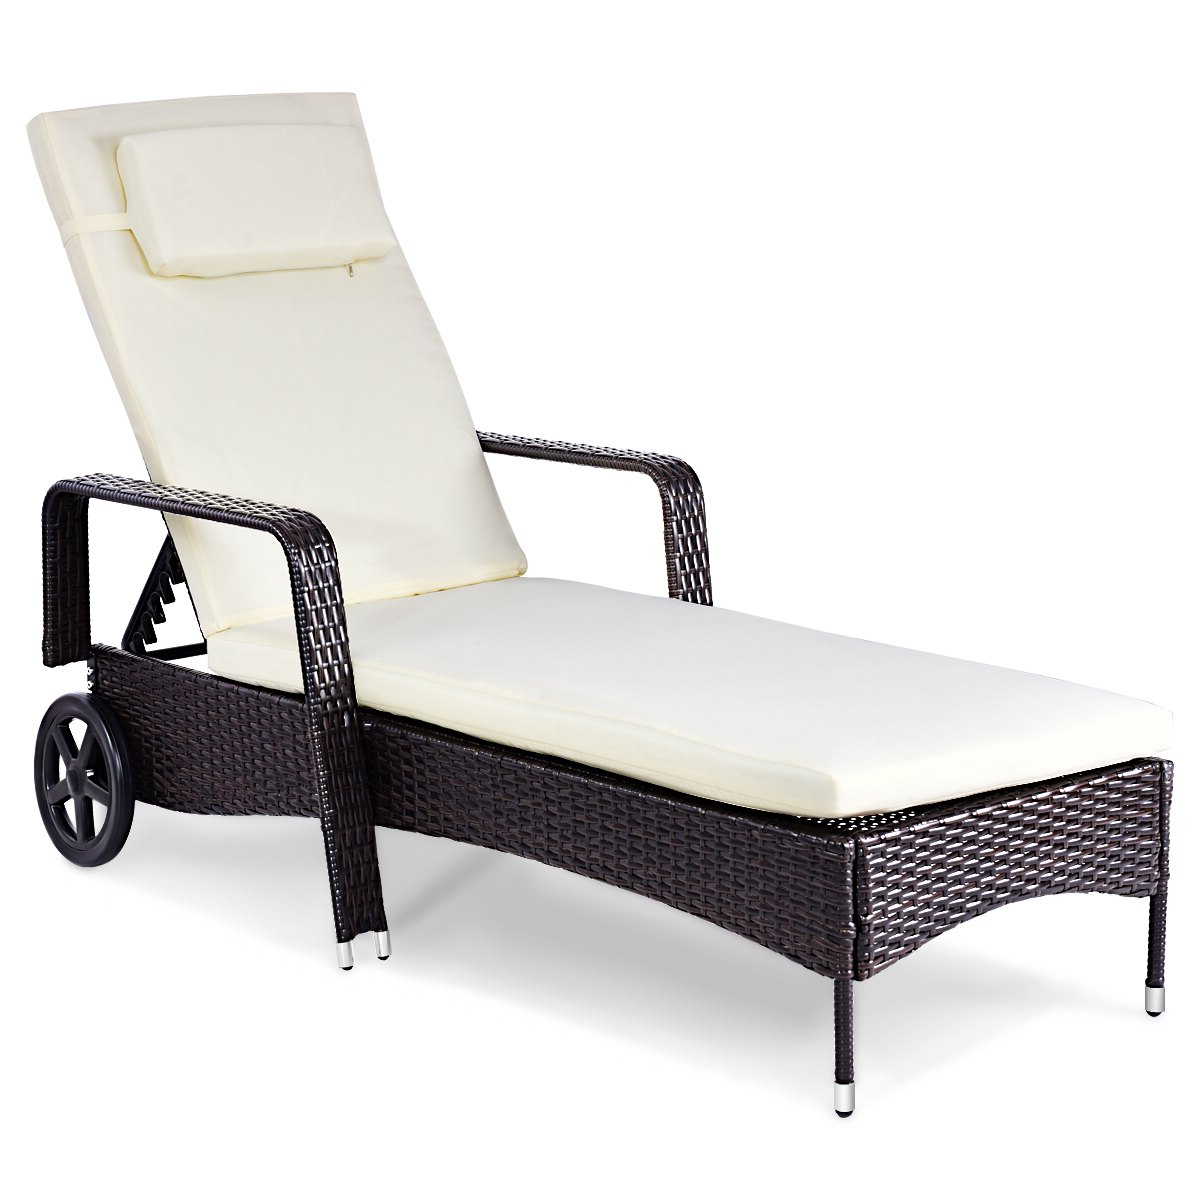 Preferred Wicker Chaise Back Adjustable Patio Lounge Chairs With Wheels With Costway Outdoor Chaise Lounge Chair Recliner Cushioned Patio Furniture Adjustable Wheels (View 6 of 25)